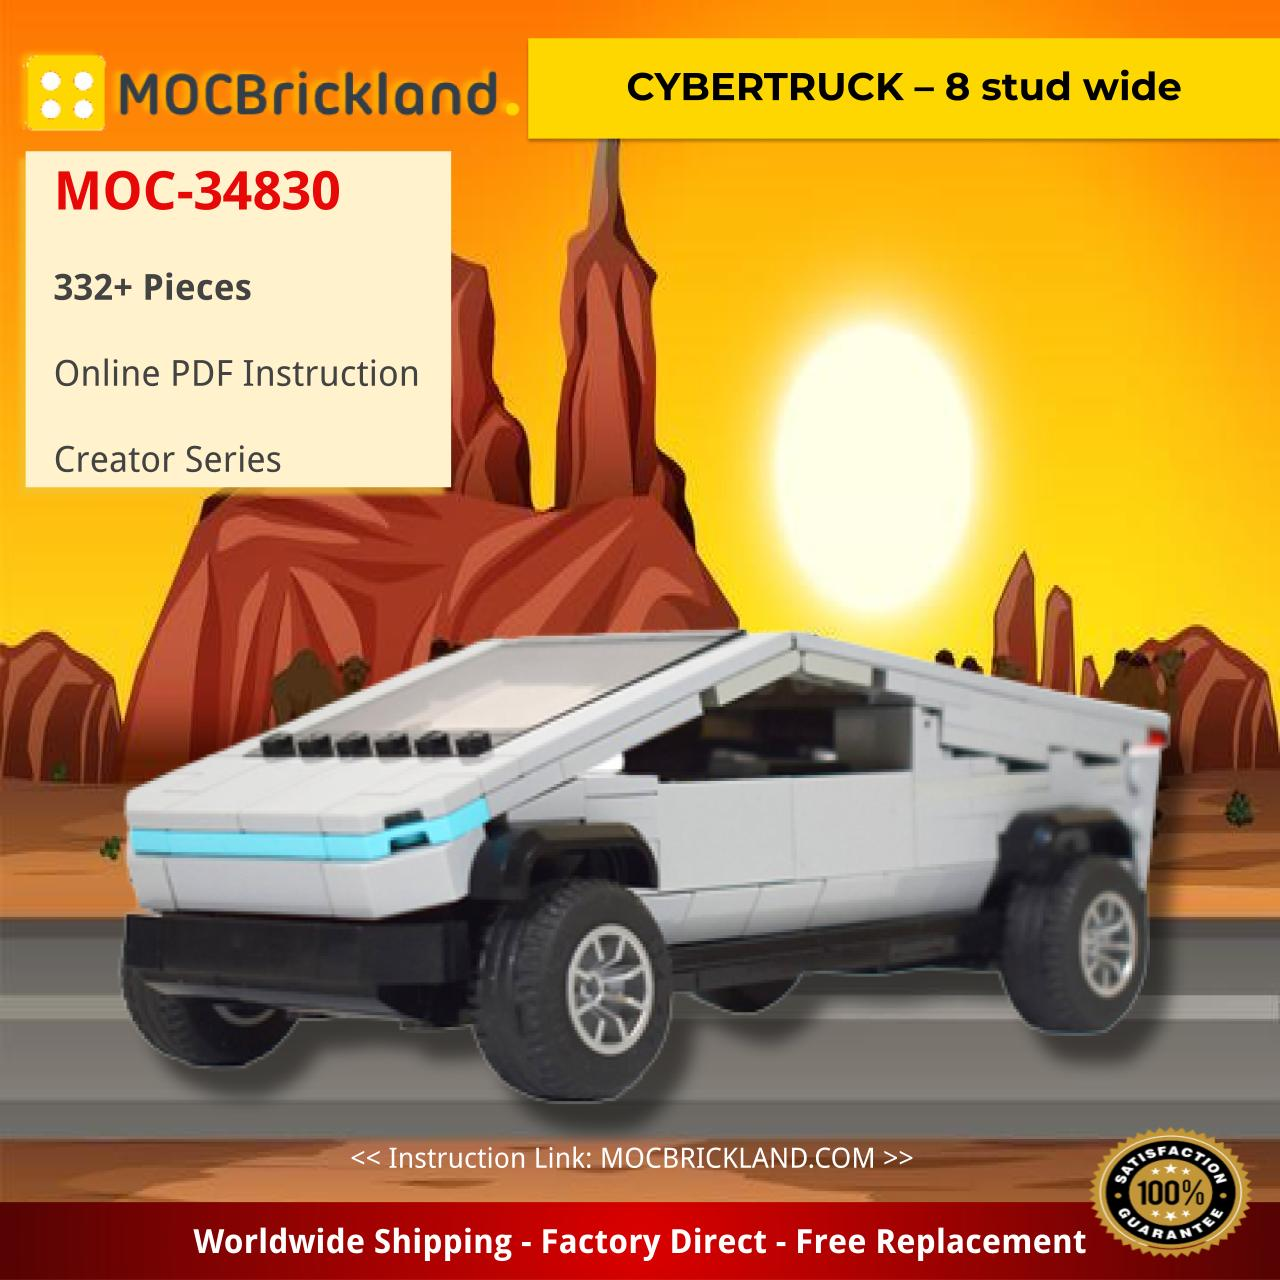 CYBERTRUCK – 8 stud wide Creator MOC-34830 by thegbrix WITH 332 PIECES